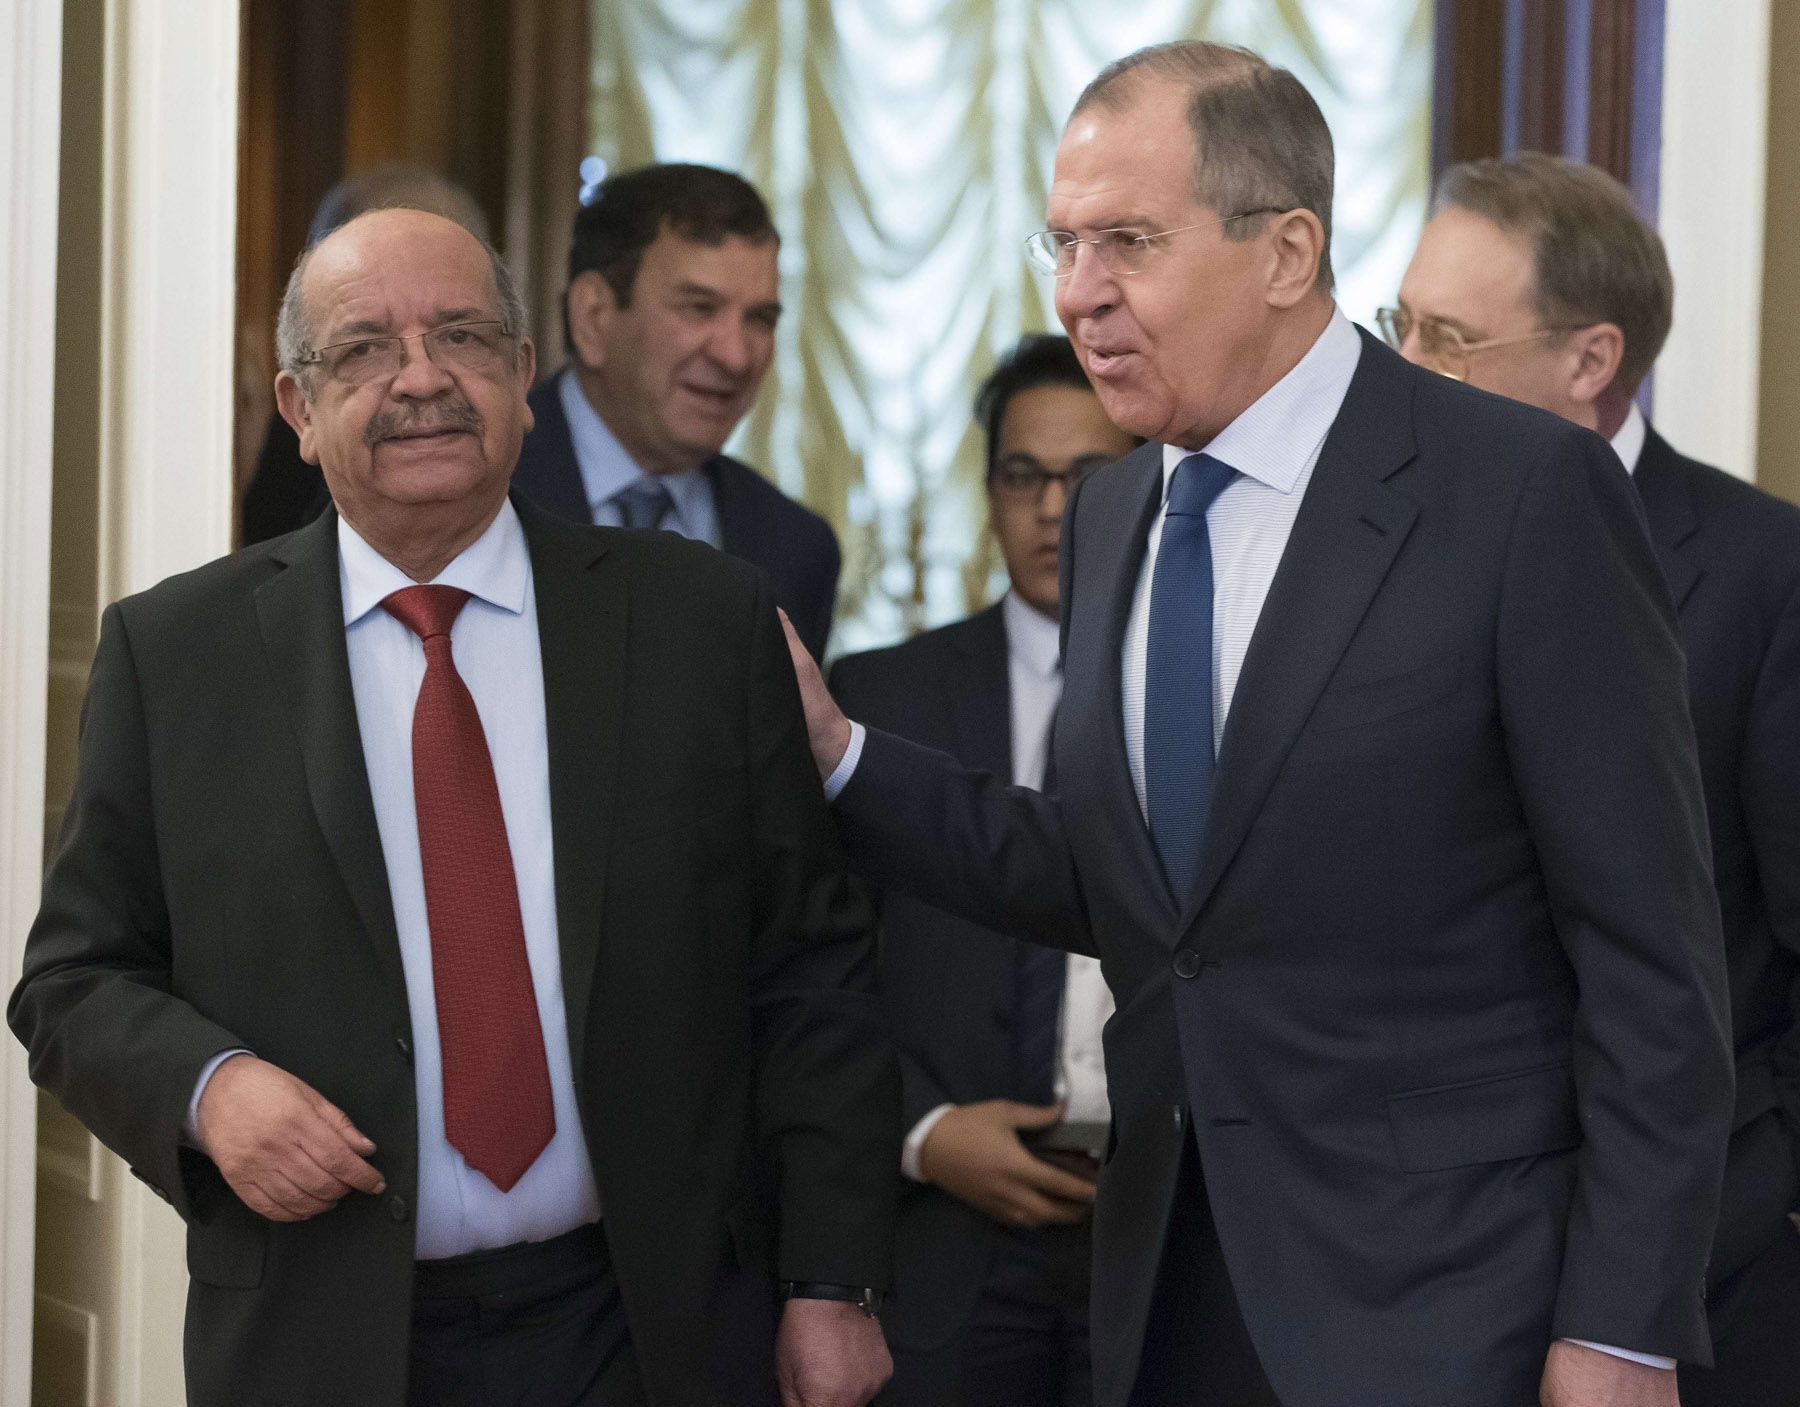 Russian Foreign Minister Sergey Lavrov, right, and Algerian Foreign Affairs Minister Abdelkader Messahel enter a hall for their talks in Moscow, Russia, Monday, Feb. 19, 2018. (AP)